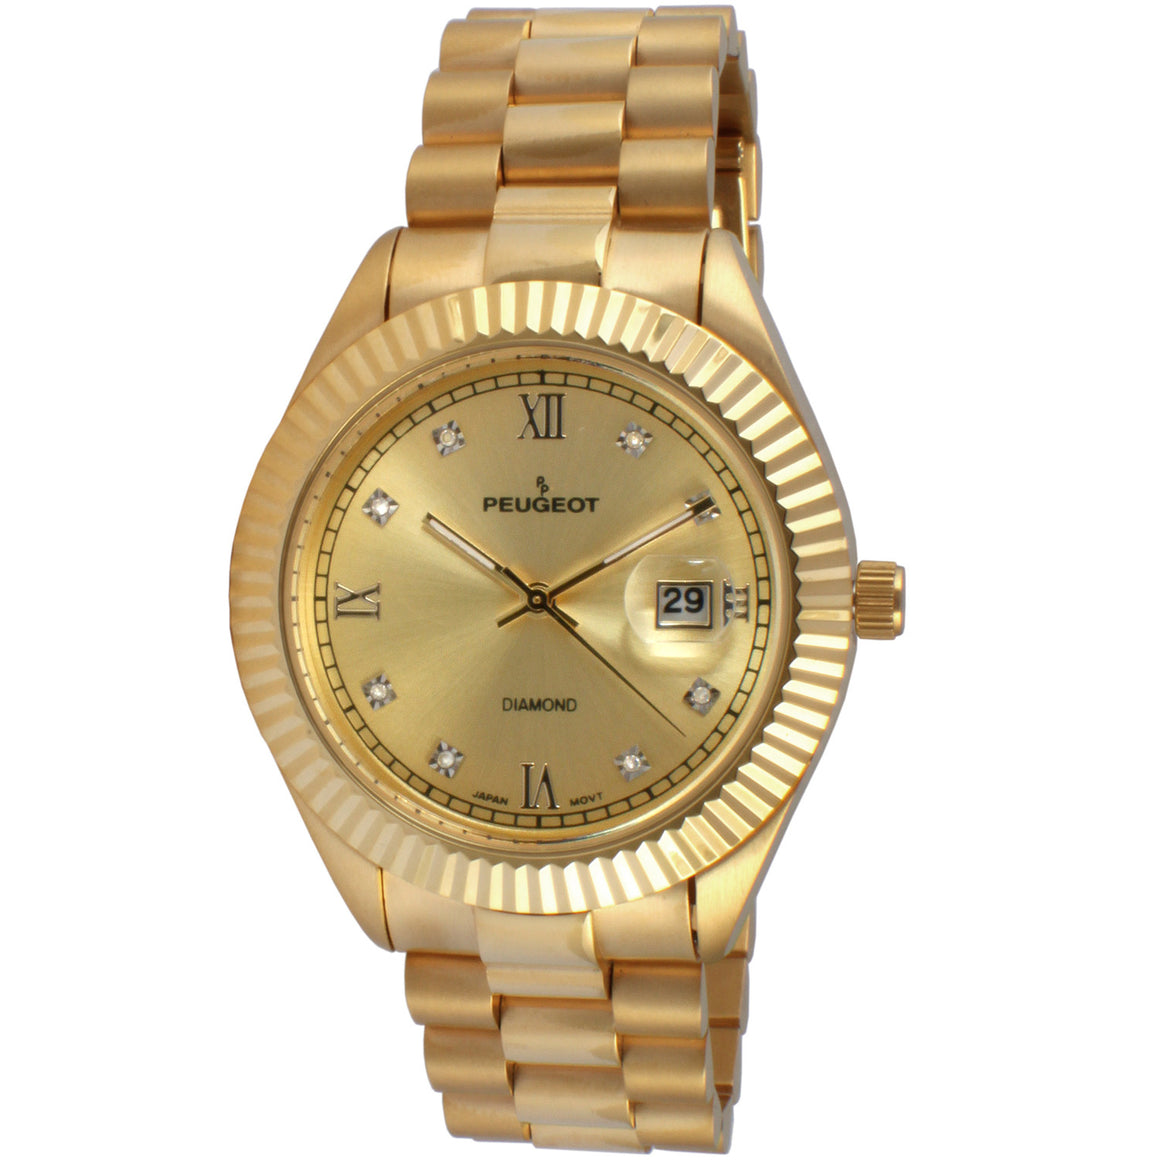 Peugeot  Men's Diamond Dial Quartz Watch 14K gold Plated Stainless Steel Dress Watch Rolex design fluted bezel with date window lifetime warranty -Gold Tone is an all gold plated watch.  It is highlighted by 8 Genuine diamond markers alternating with applied Roman Numeral & enlarged date window at 3 o'clock. Thin luminous hands center and gold-tone dial background make the Peugeot 'Diamond' Quartz Metal & Stainless Steel Dress Watch - Gold Tone a luxury inspired timepiece together.